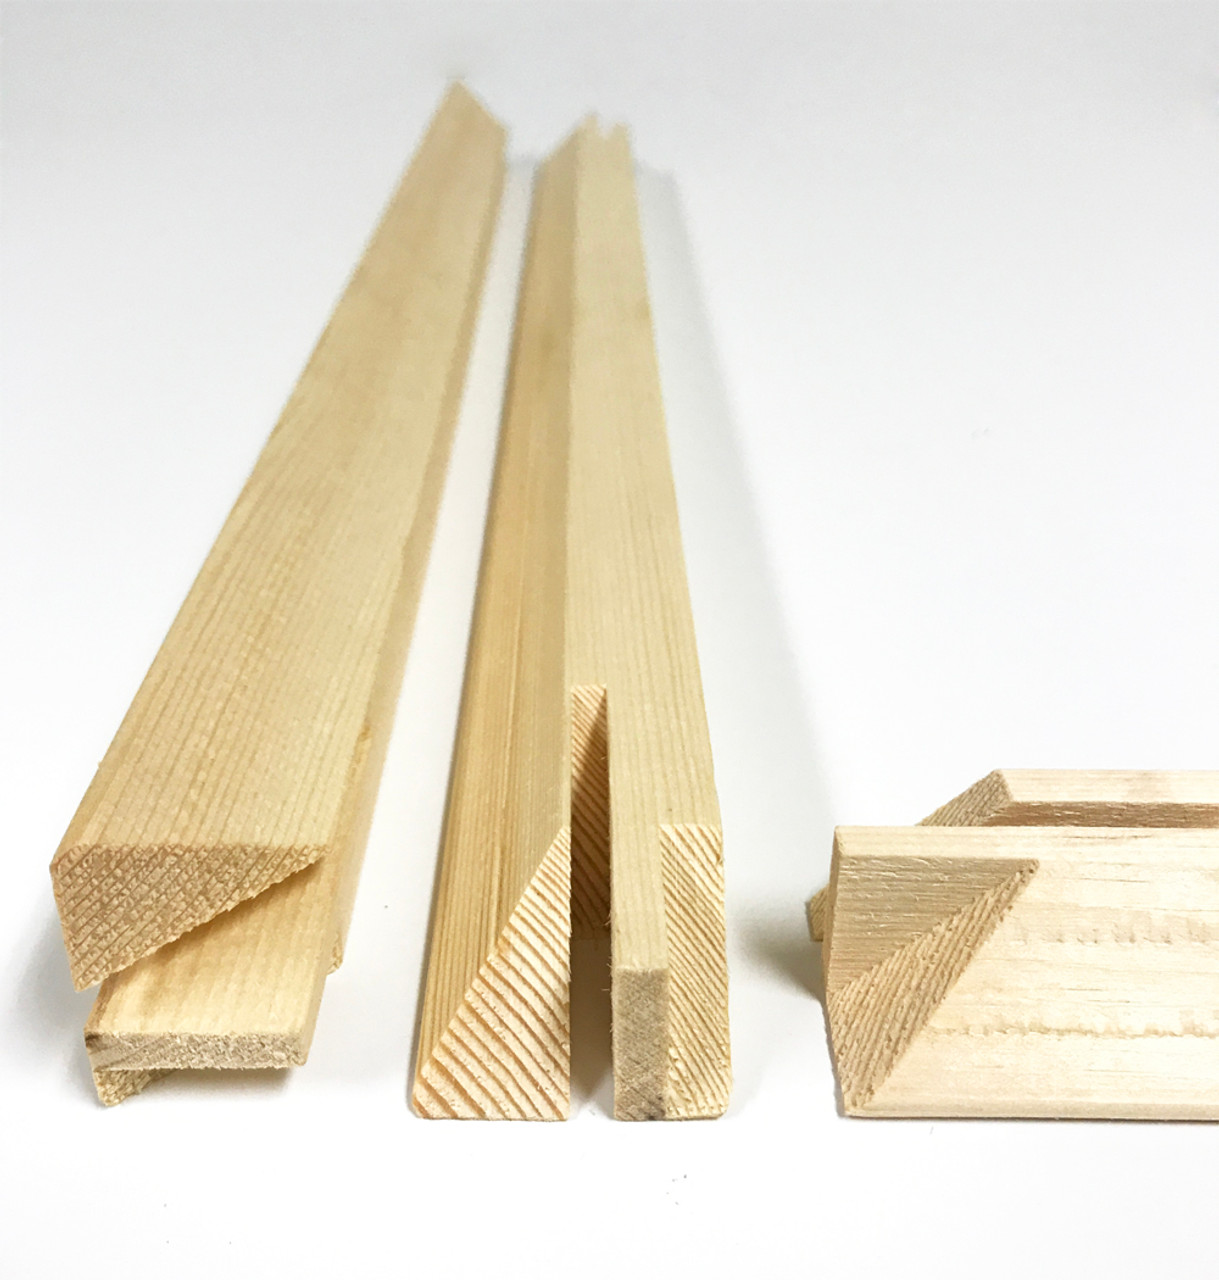 Canvas stretcher bars and canvas stretcher frames for oil paintings ...